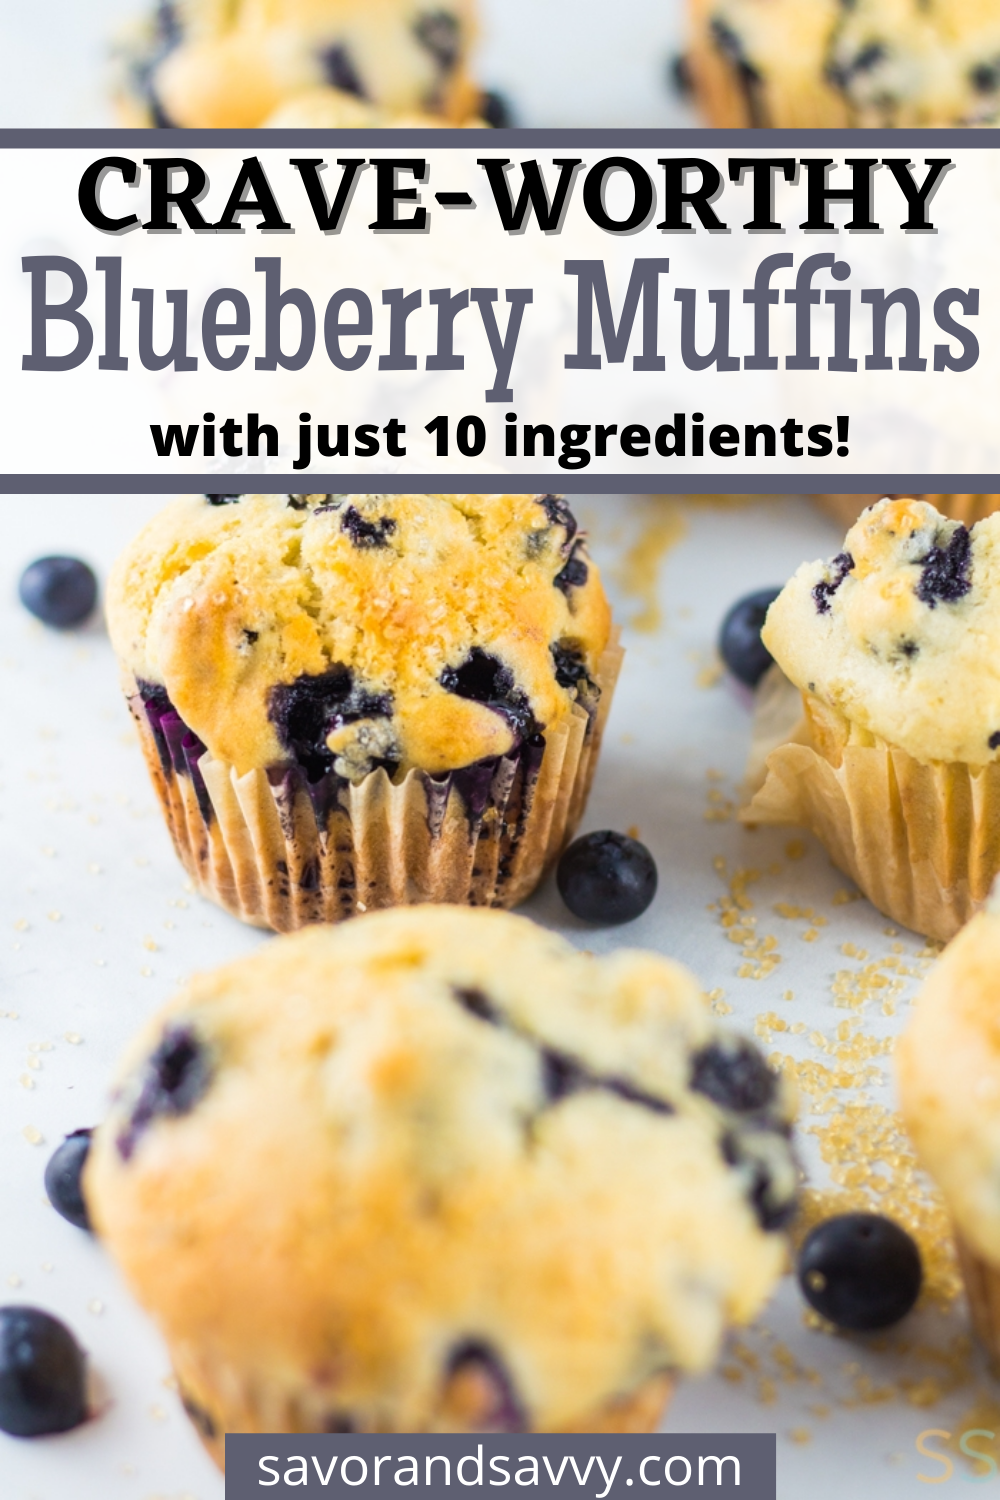 Blueberry Muffins Recipe {30 Minutes}